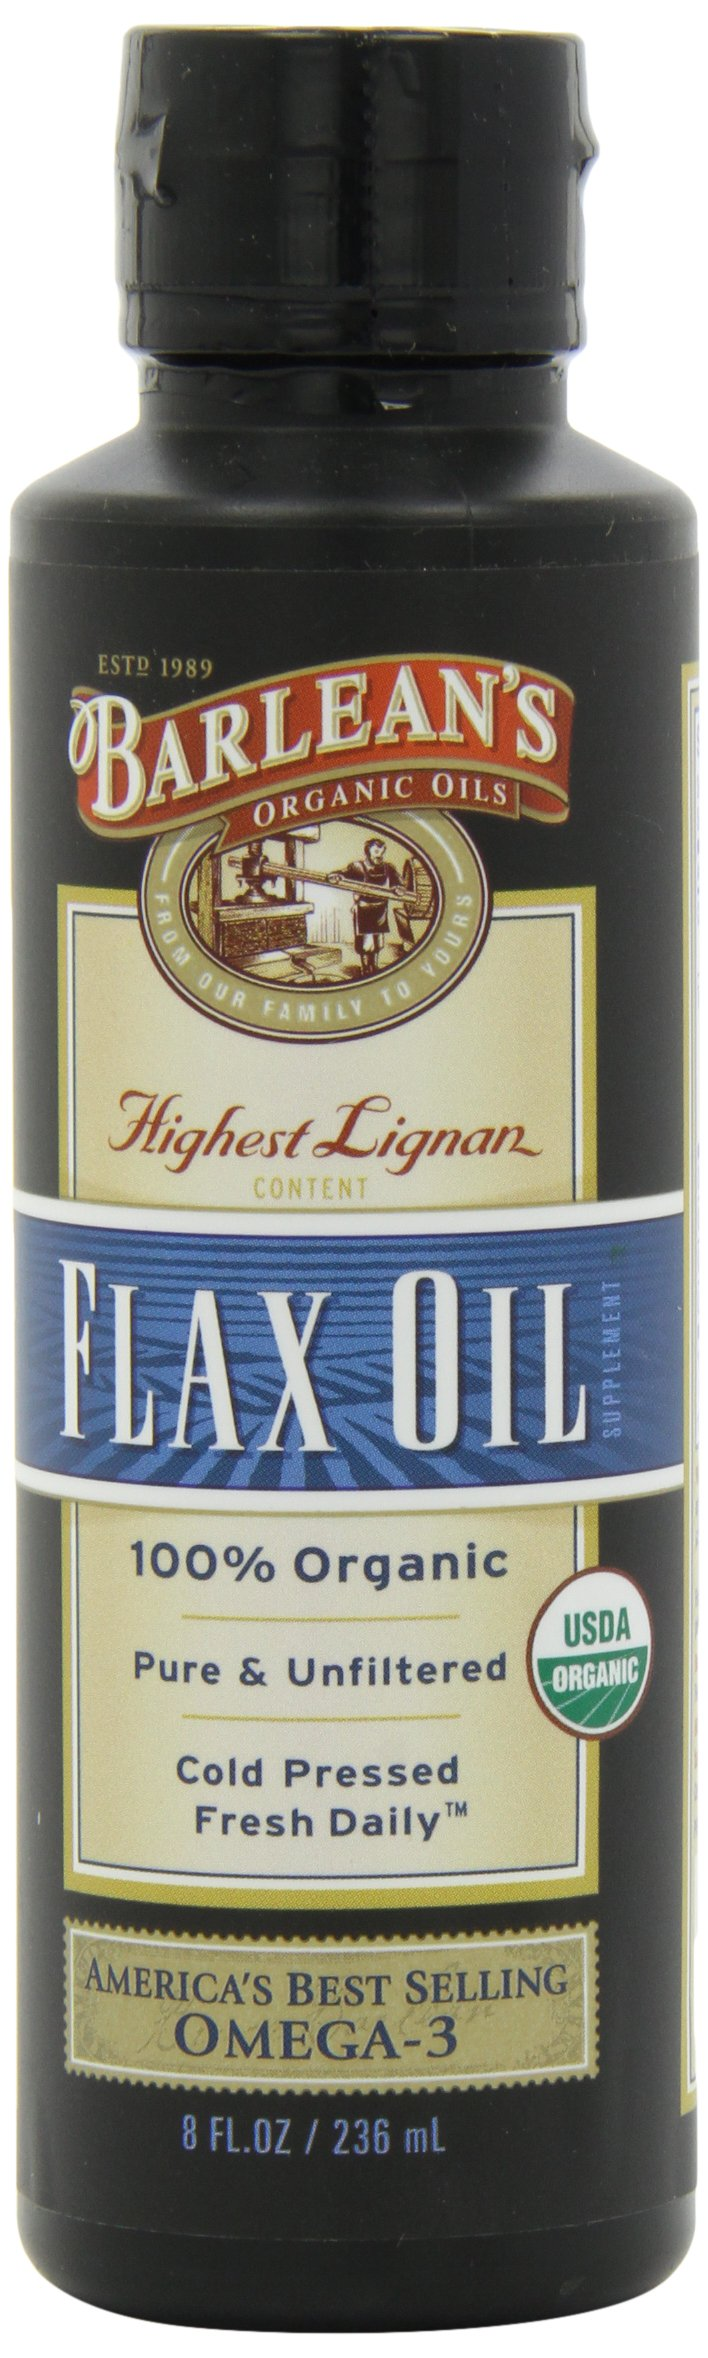 Barlean's Organic Oils High Lignan Flax Oil, 8-Ounce Bottles (Pack of 2)